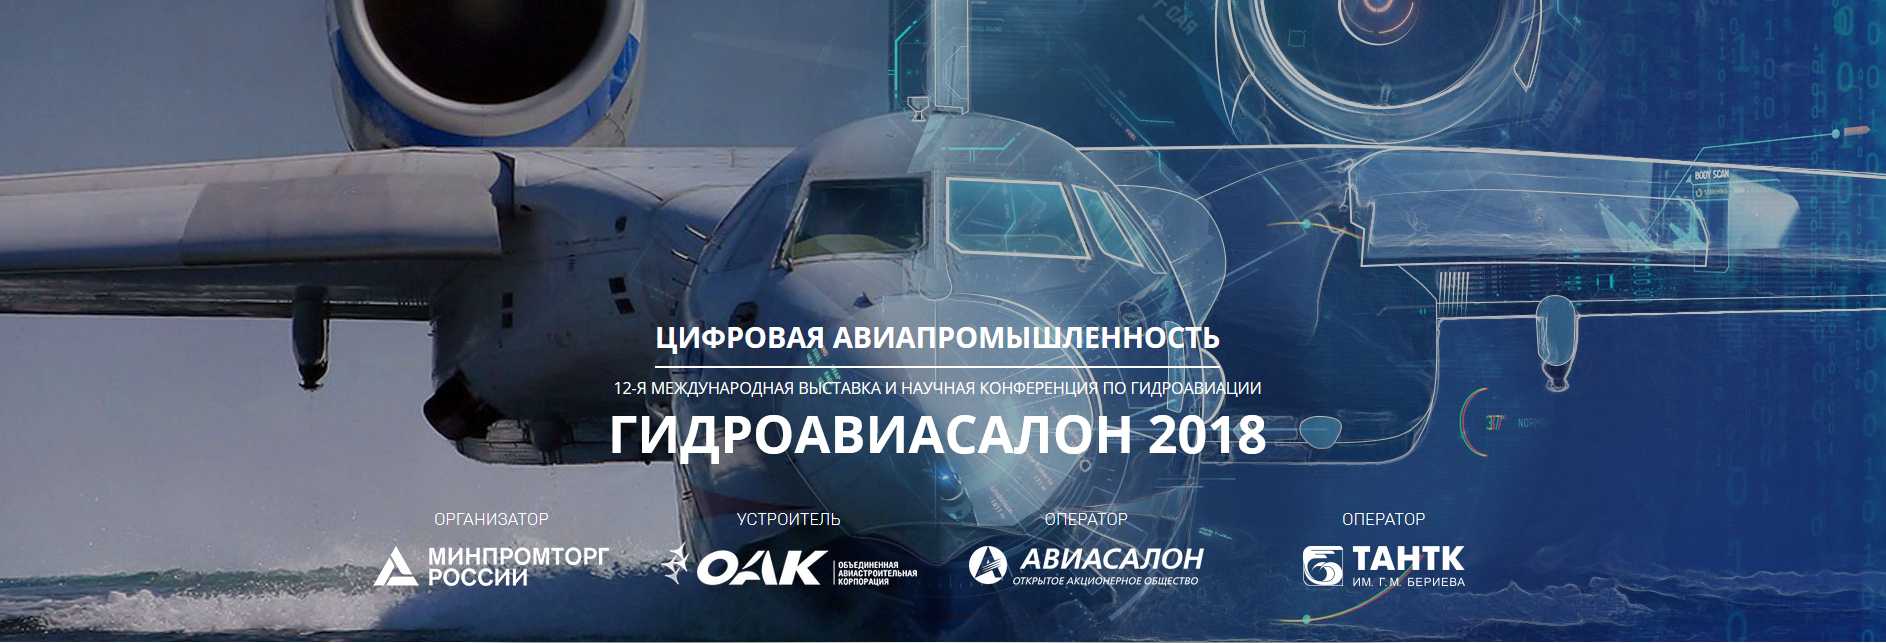 "The XII International exhibition and scientific sea aviation conference ""HYDROAVIASALON-2018"" will be held September 6-9, 2018, in Geledzhik, Russia"